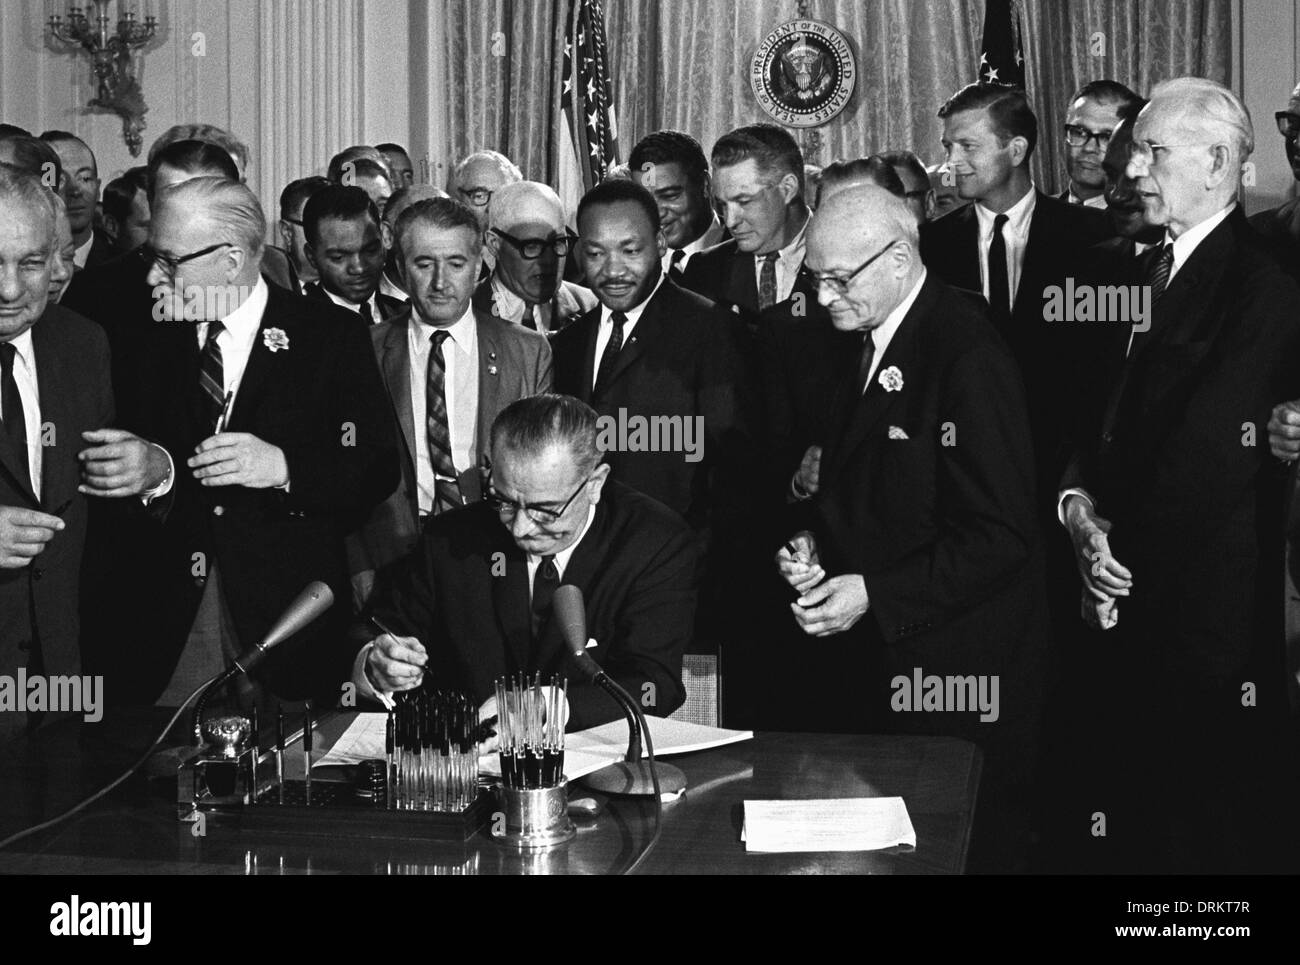 US President Lyndon B. Johnson signs the 1964 Civil Rights Act as Martin Luther King, Jr., others look on in the East Room of the White House July 2, 1964 in Washington, DC. - Stock Image